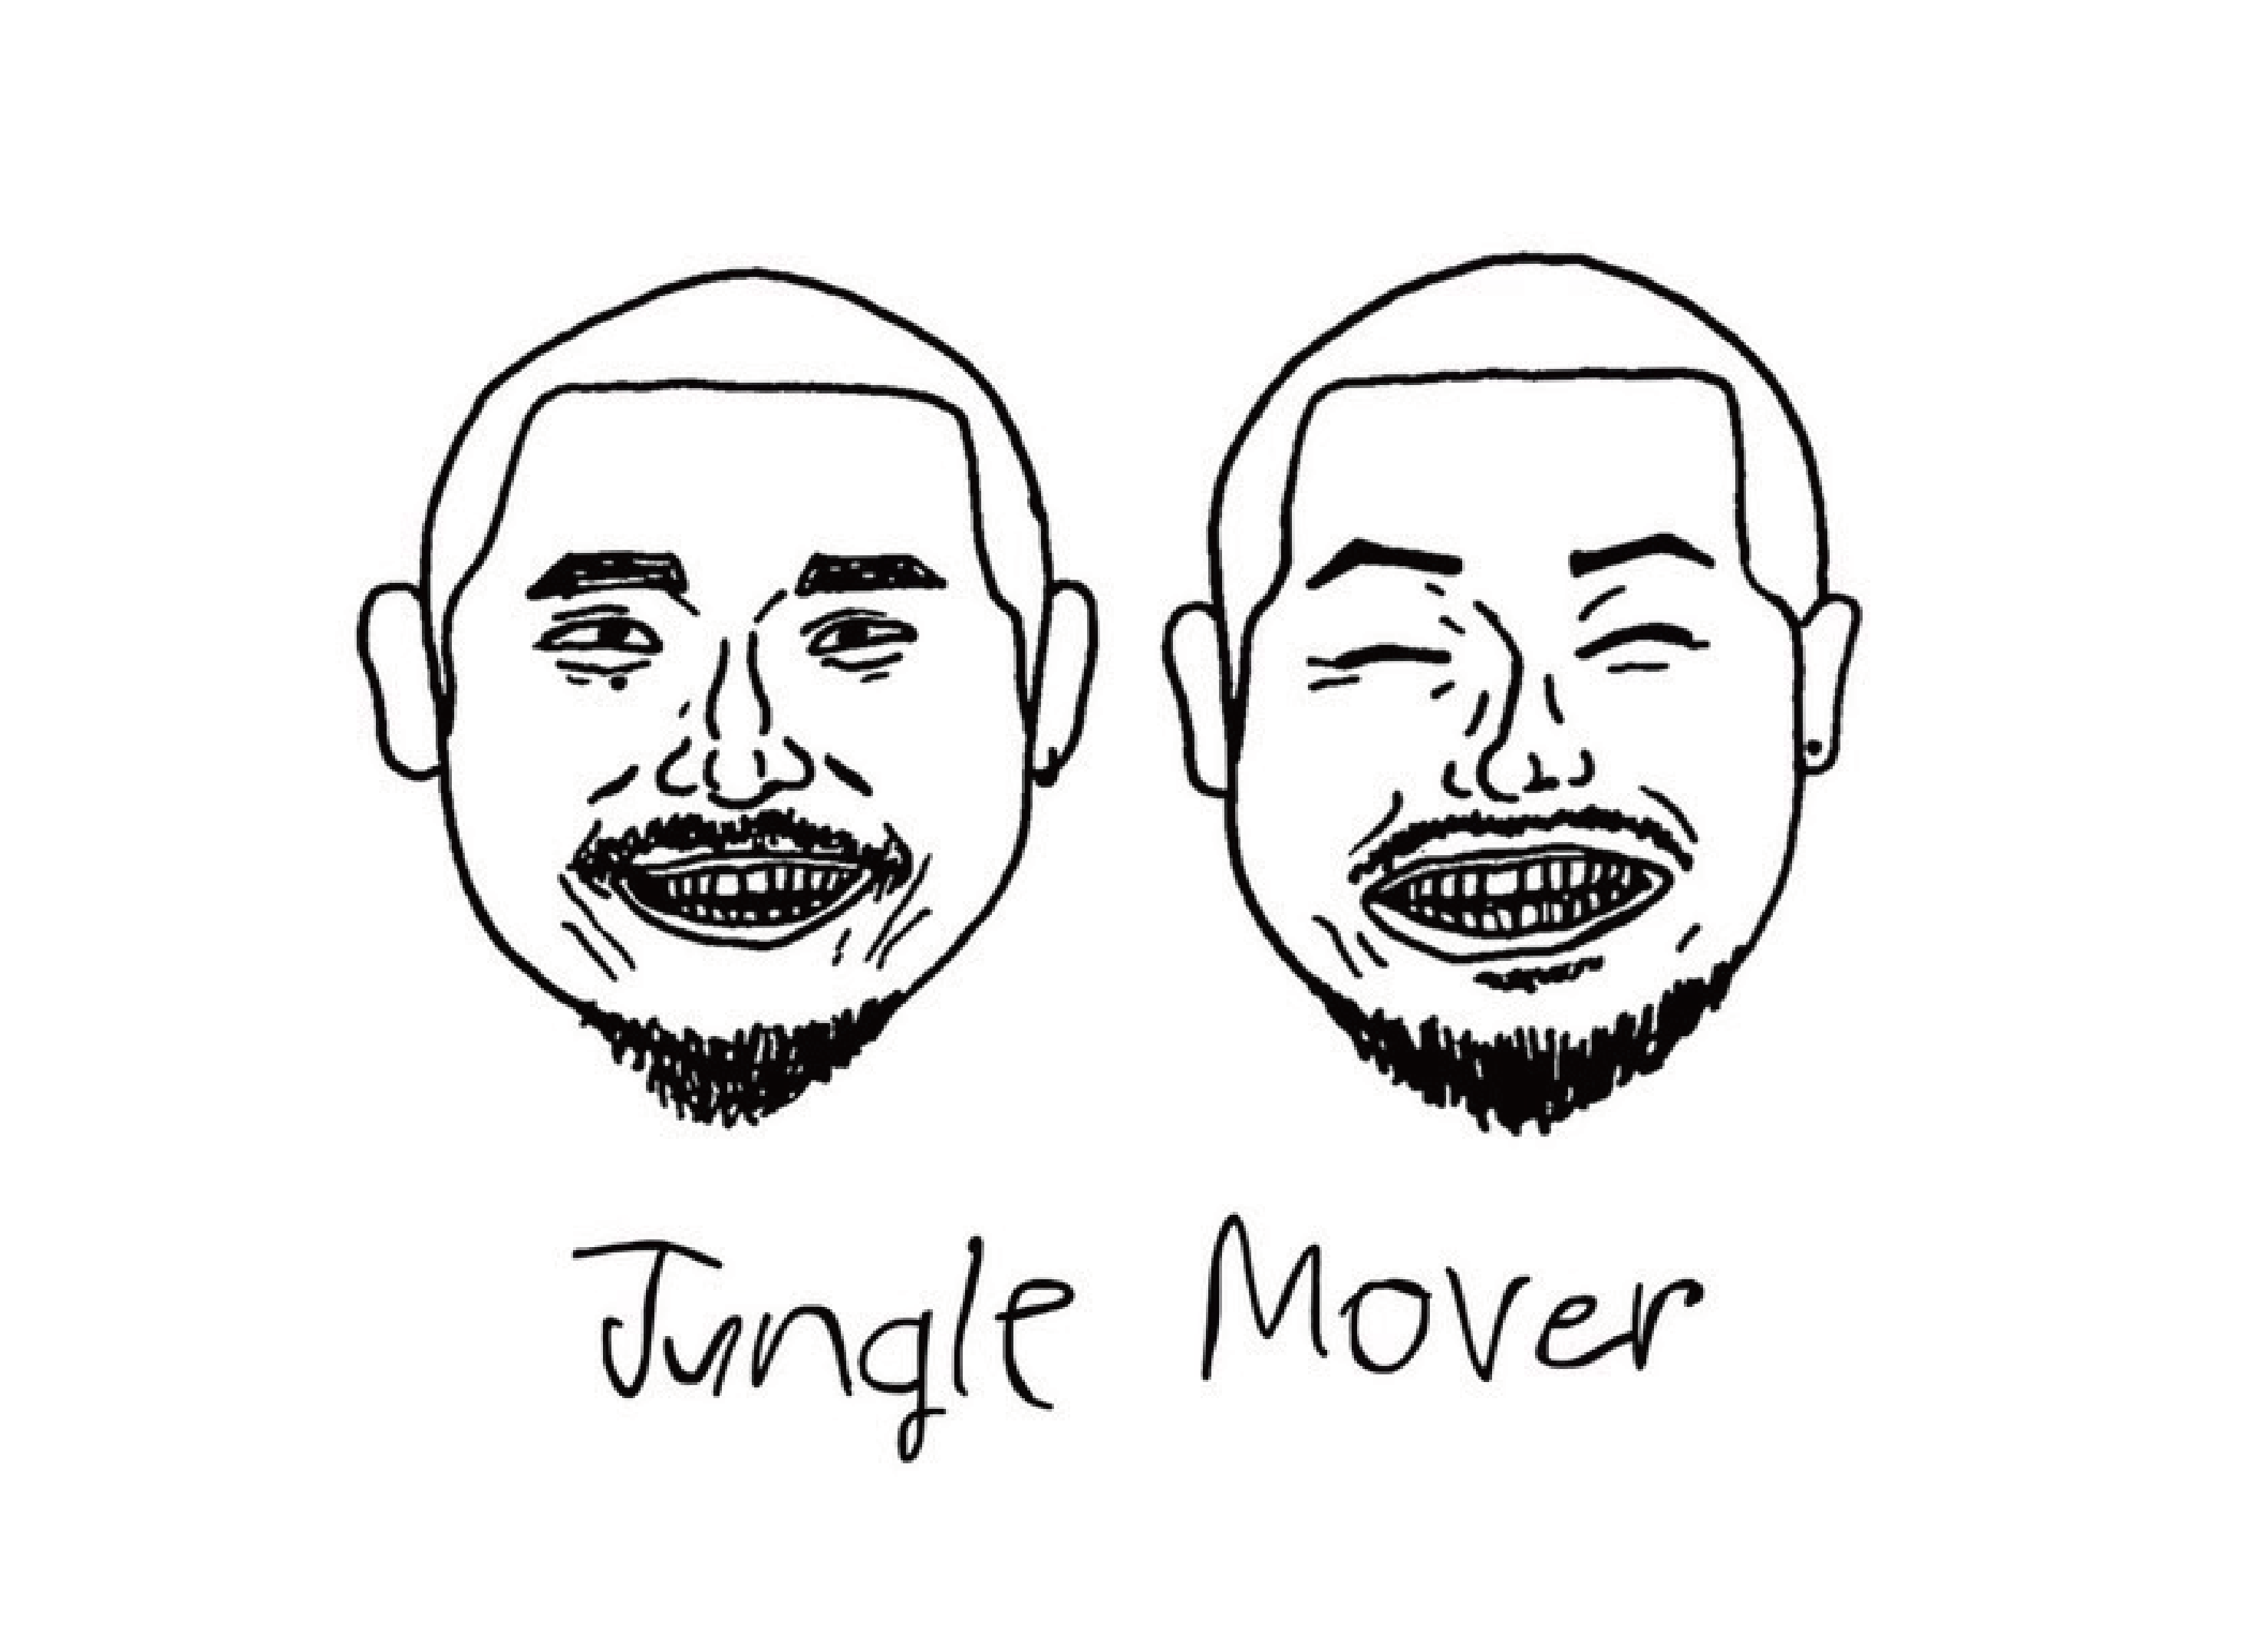 GUEST_K_Jungle_Mover-01.png